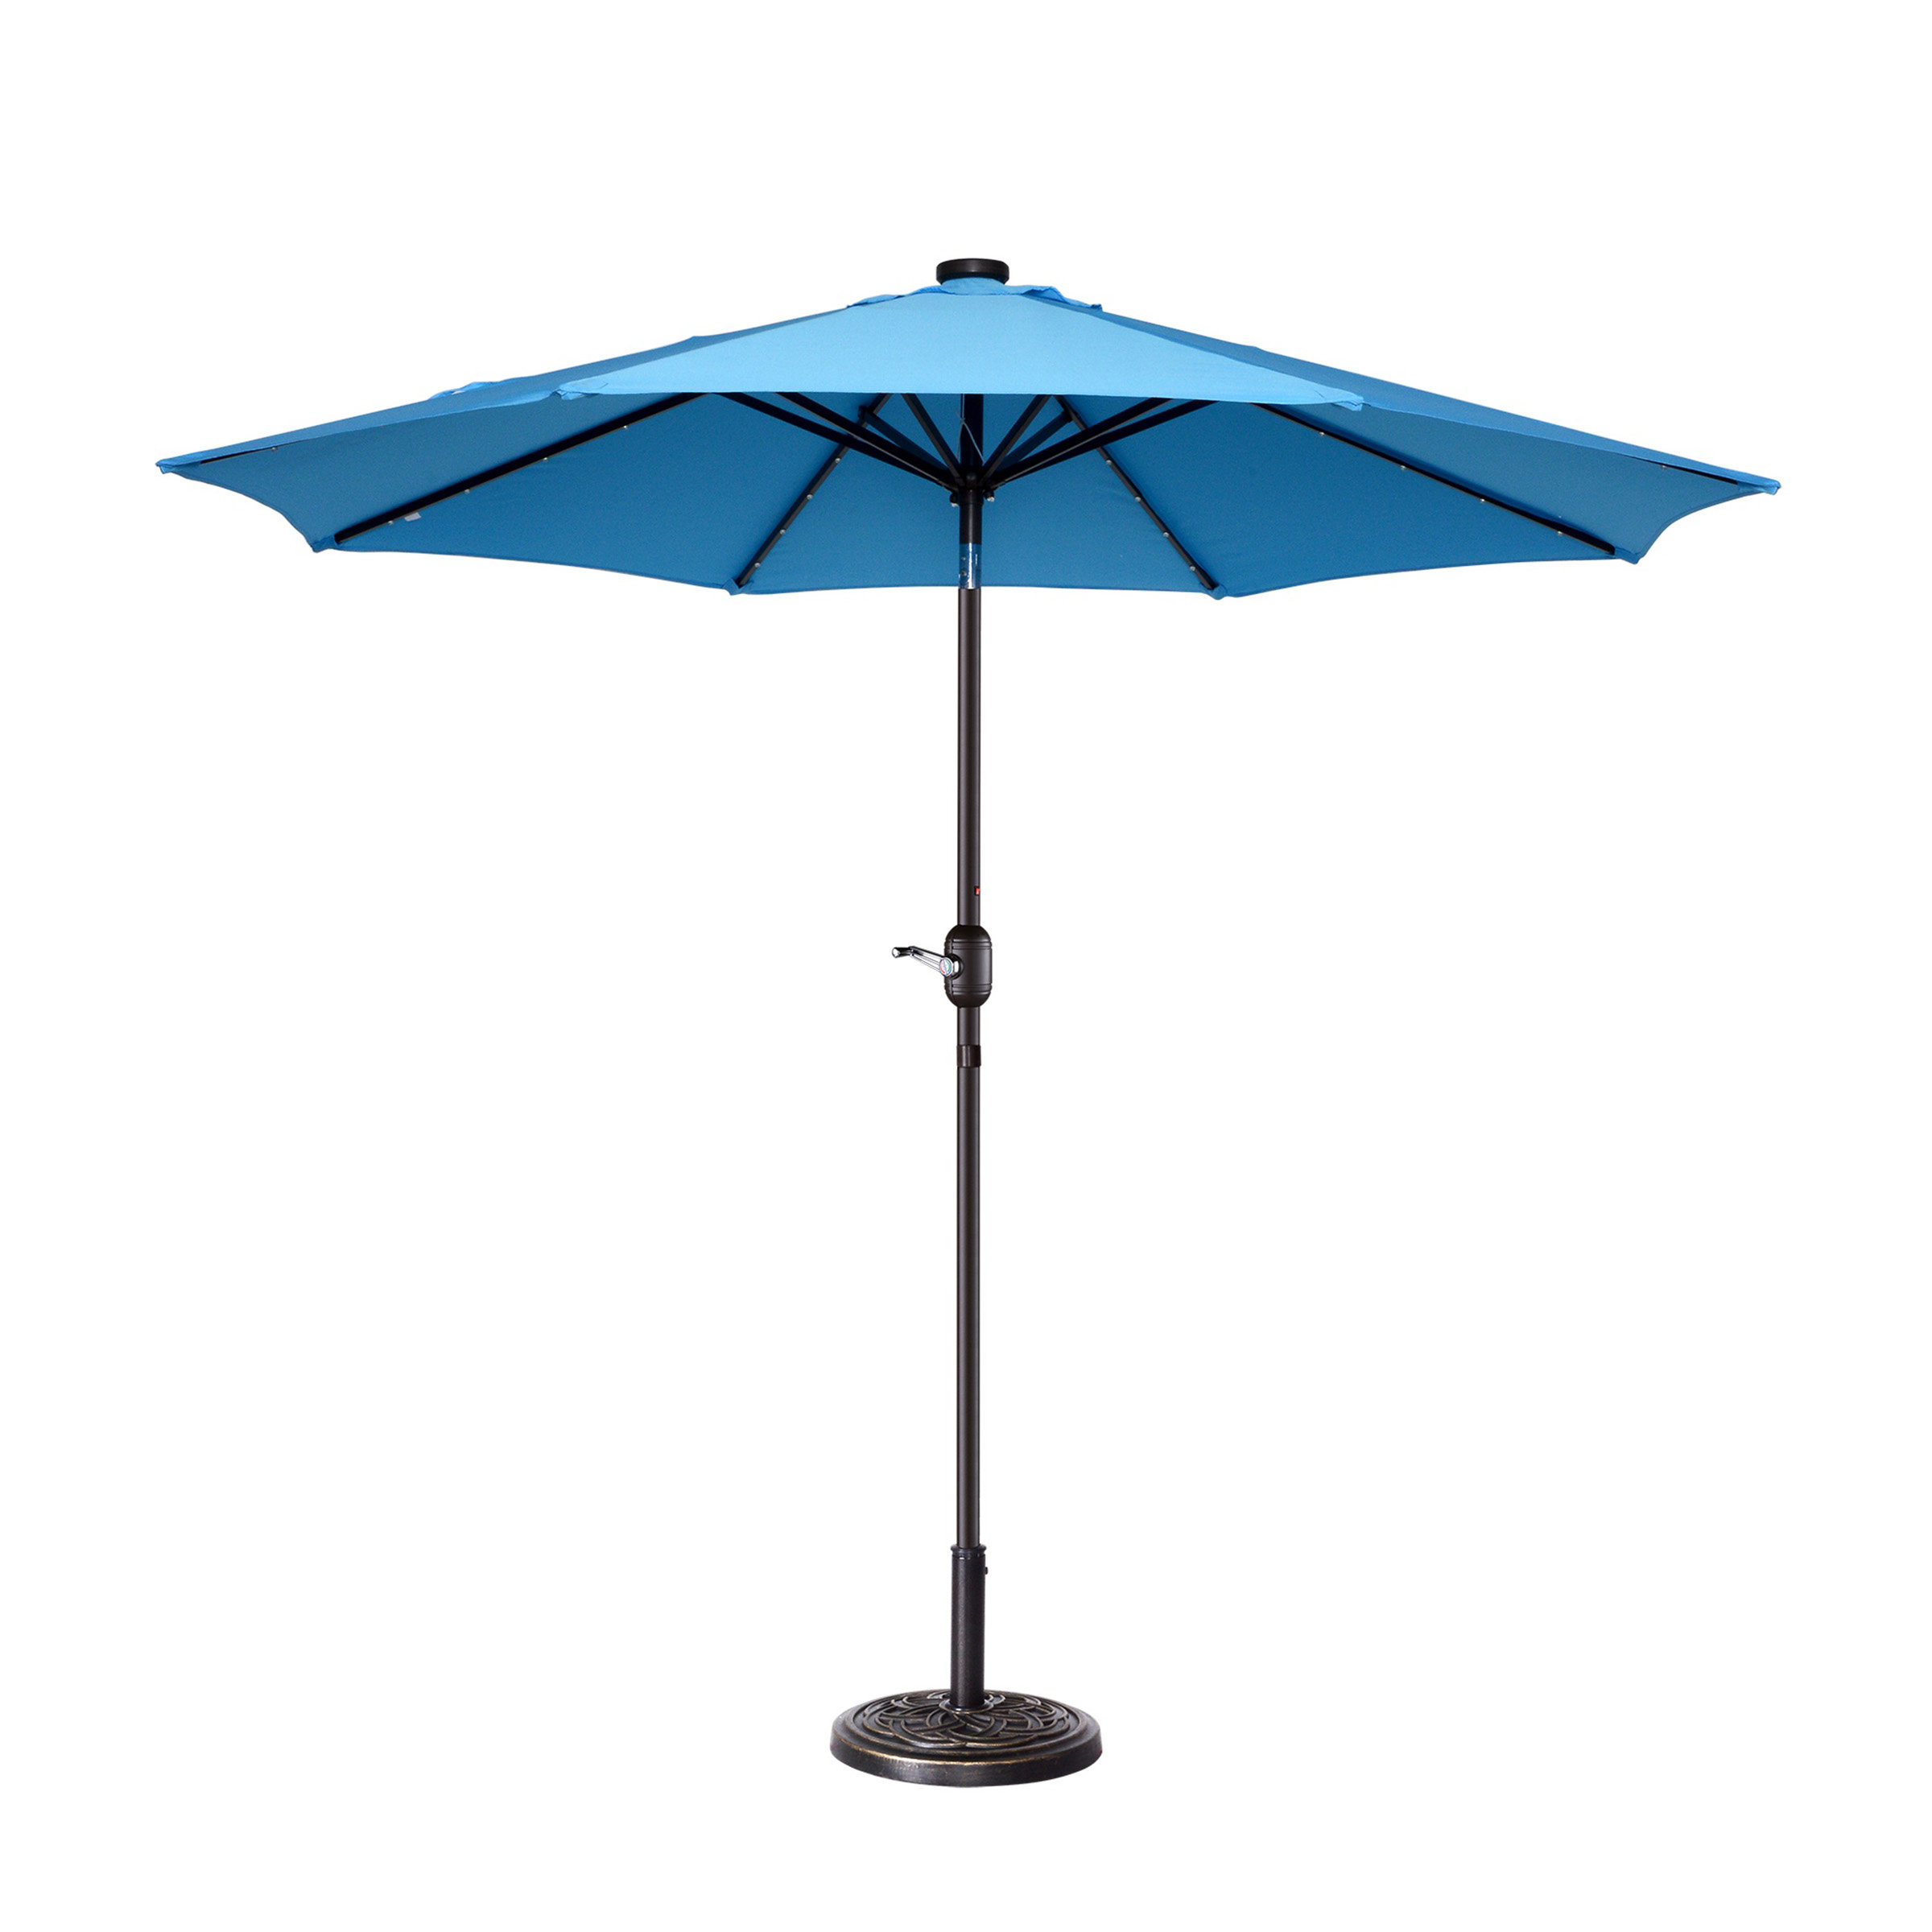 Preferred Harwich Market Umbrellas With Regard To Coggeshall Led Lighted 9' Market Umbrella (View 15 of 20)